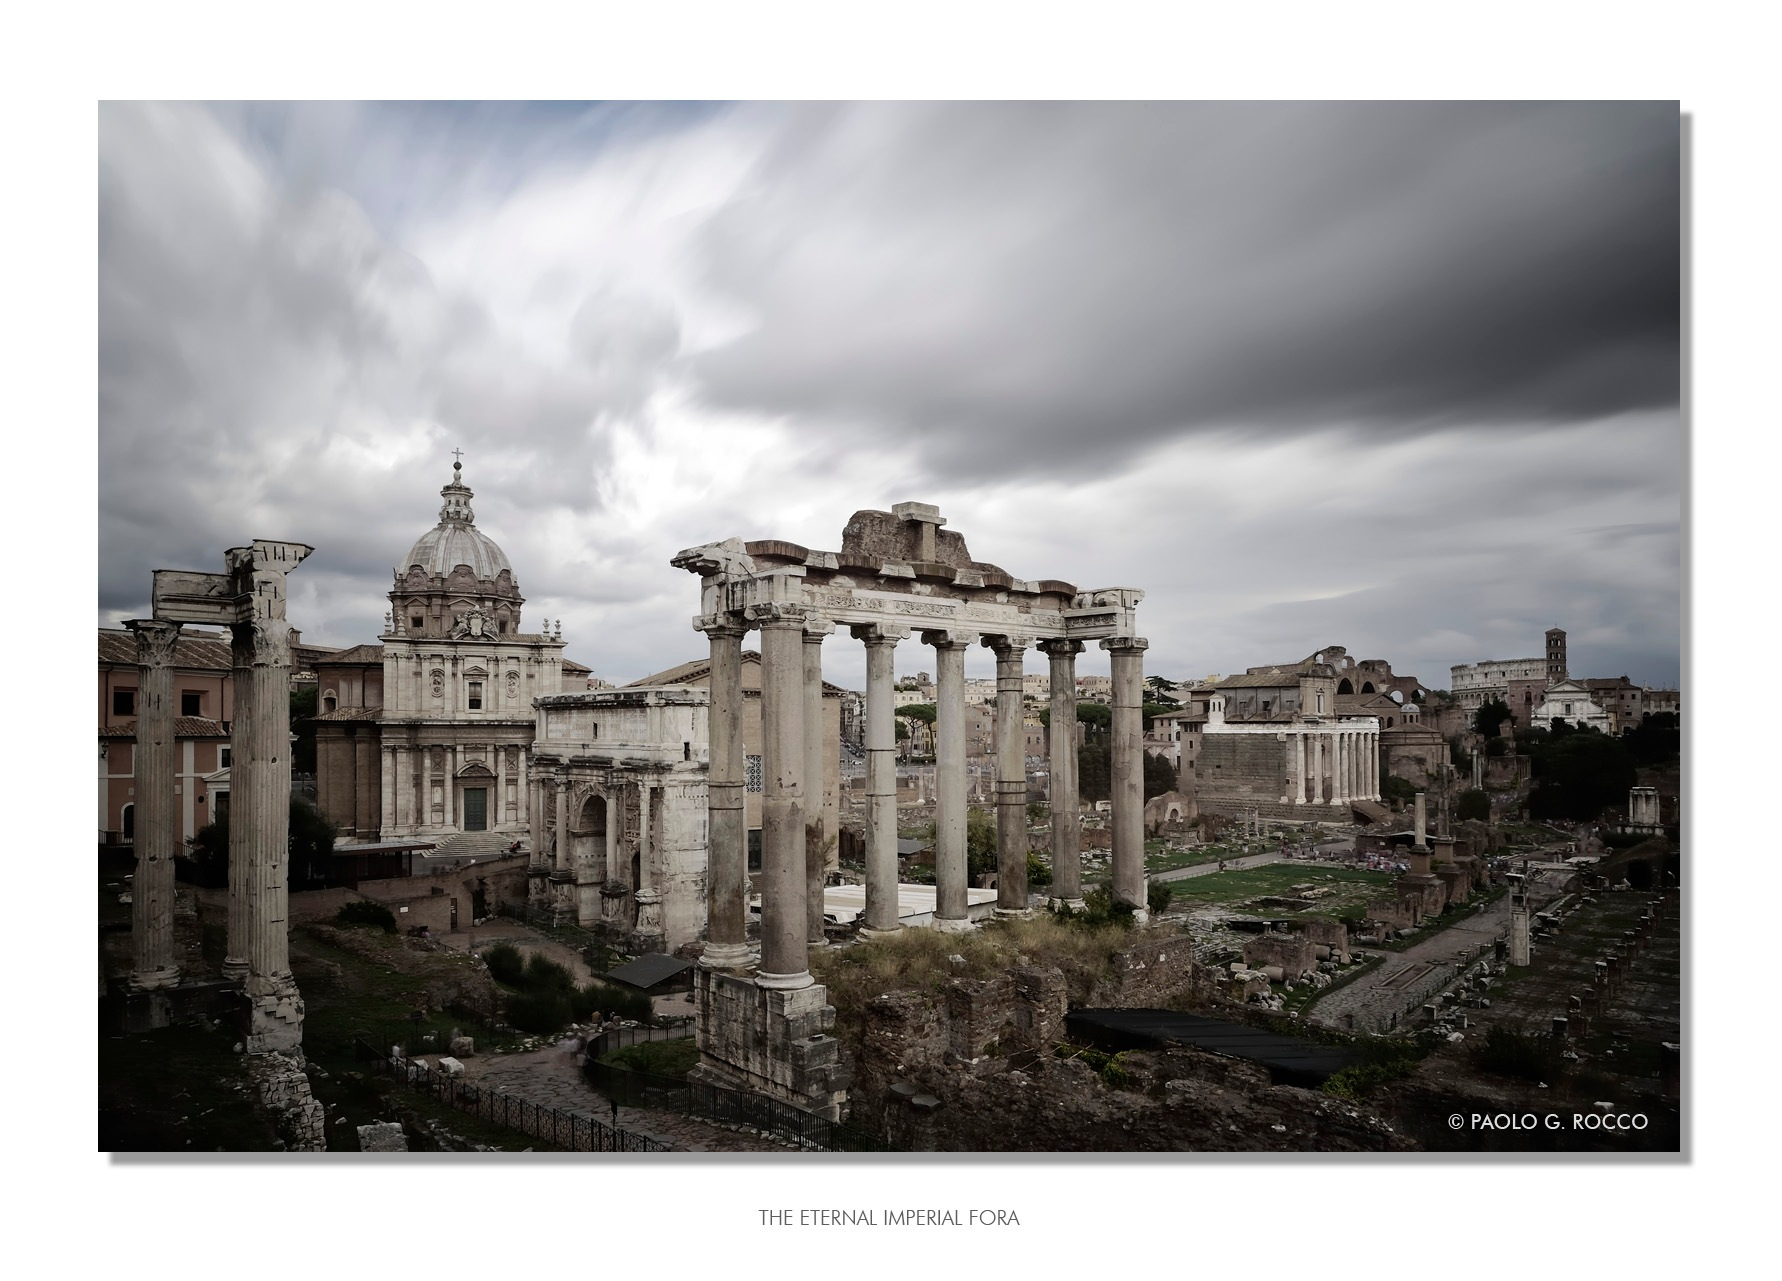 The Eternal Imperial Fora by paologaetano